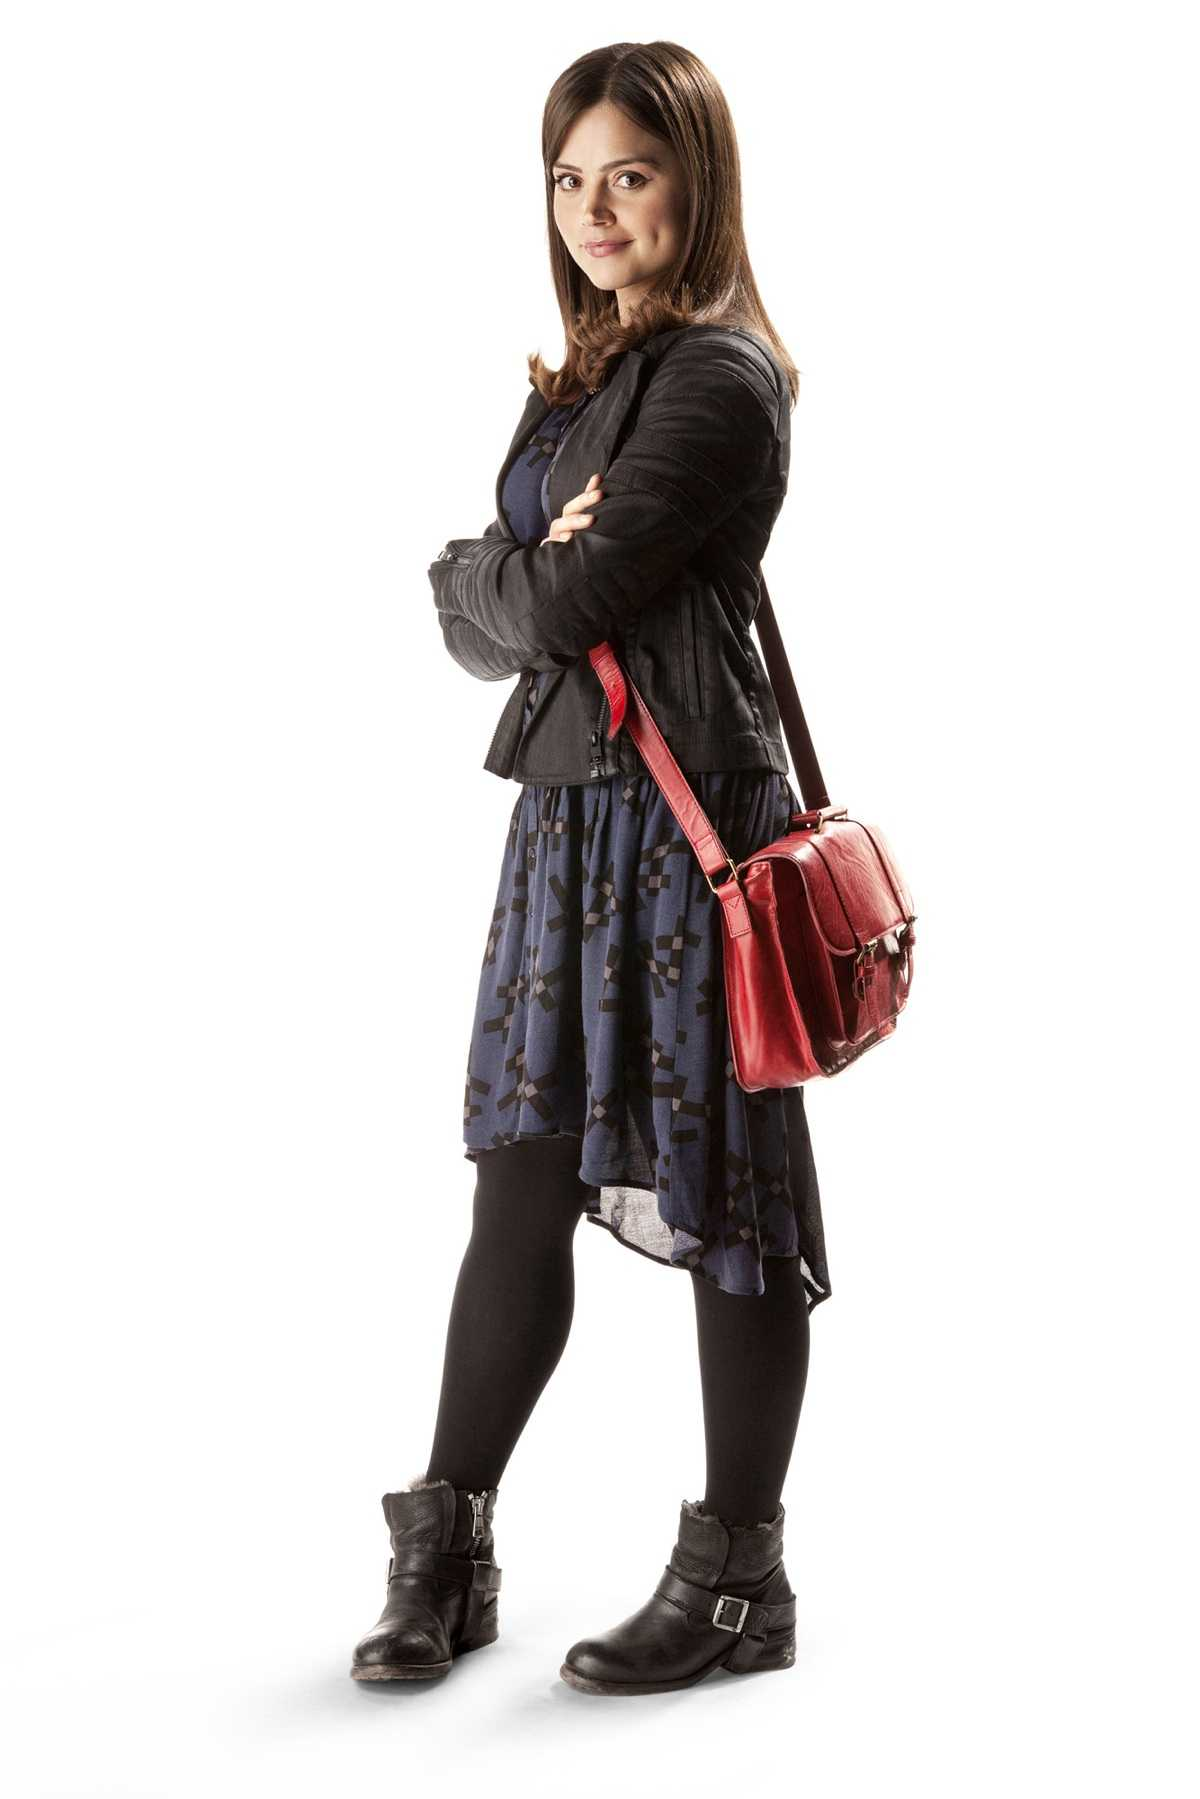 Clara Oswin Oswald: The Impossible Girl